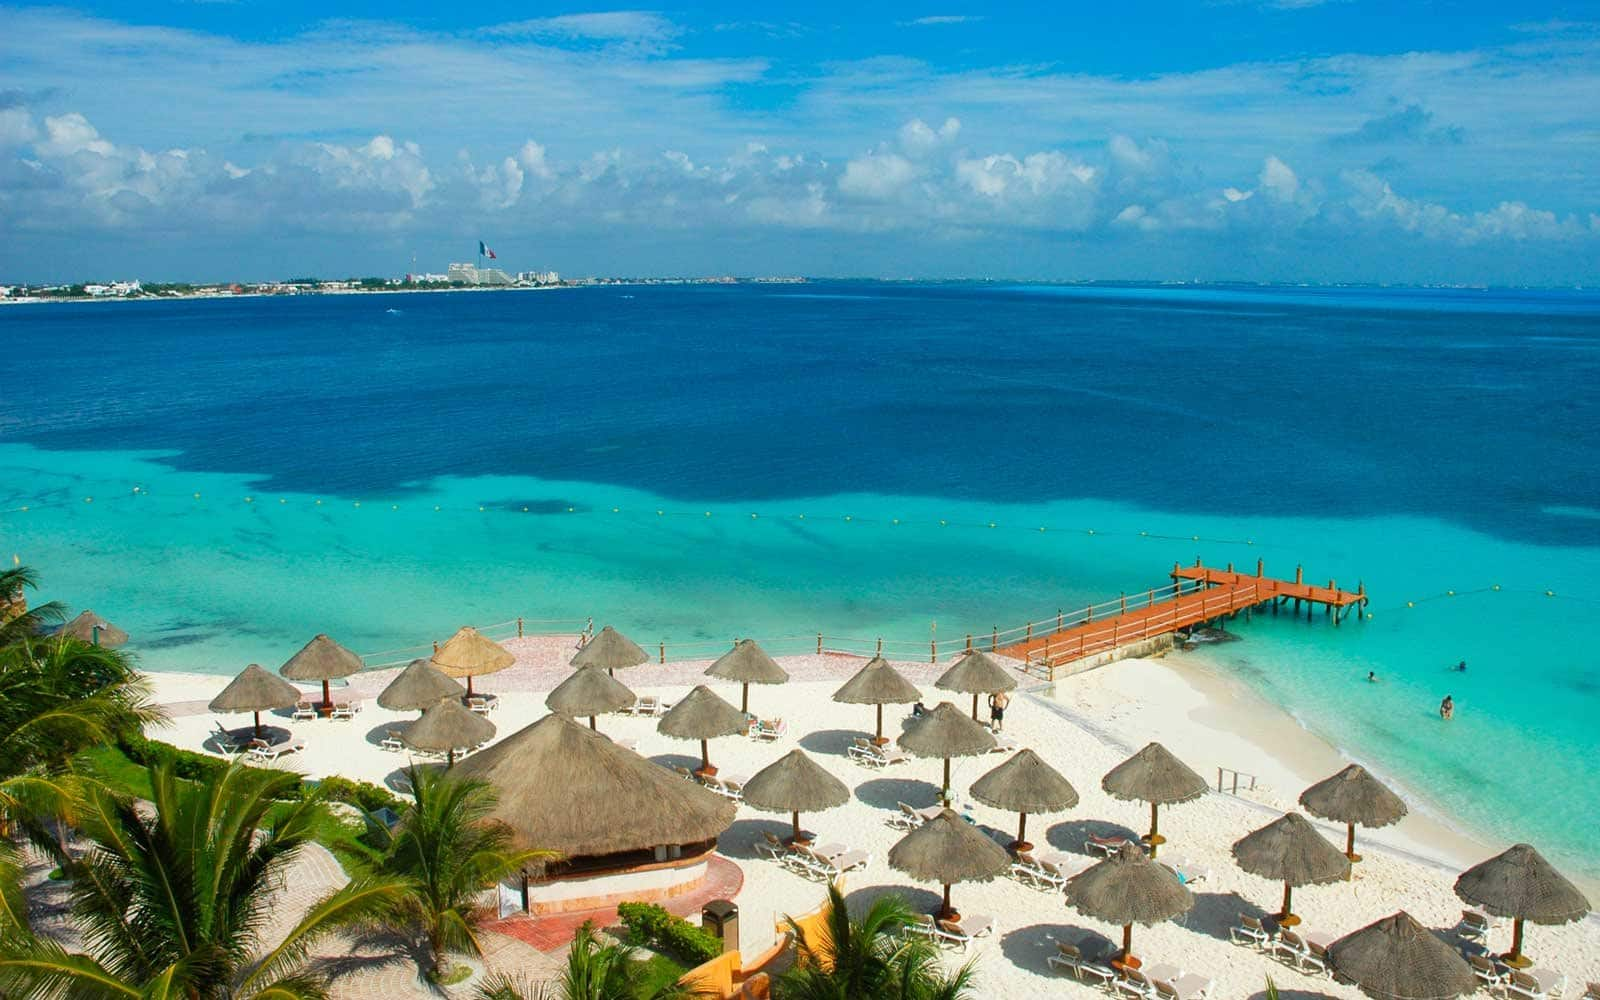 Travel Aug-Nov 2020:  Philadelphia to Cancun Mexico $199 RT Nonstop Airfares on American Airlines BE